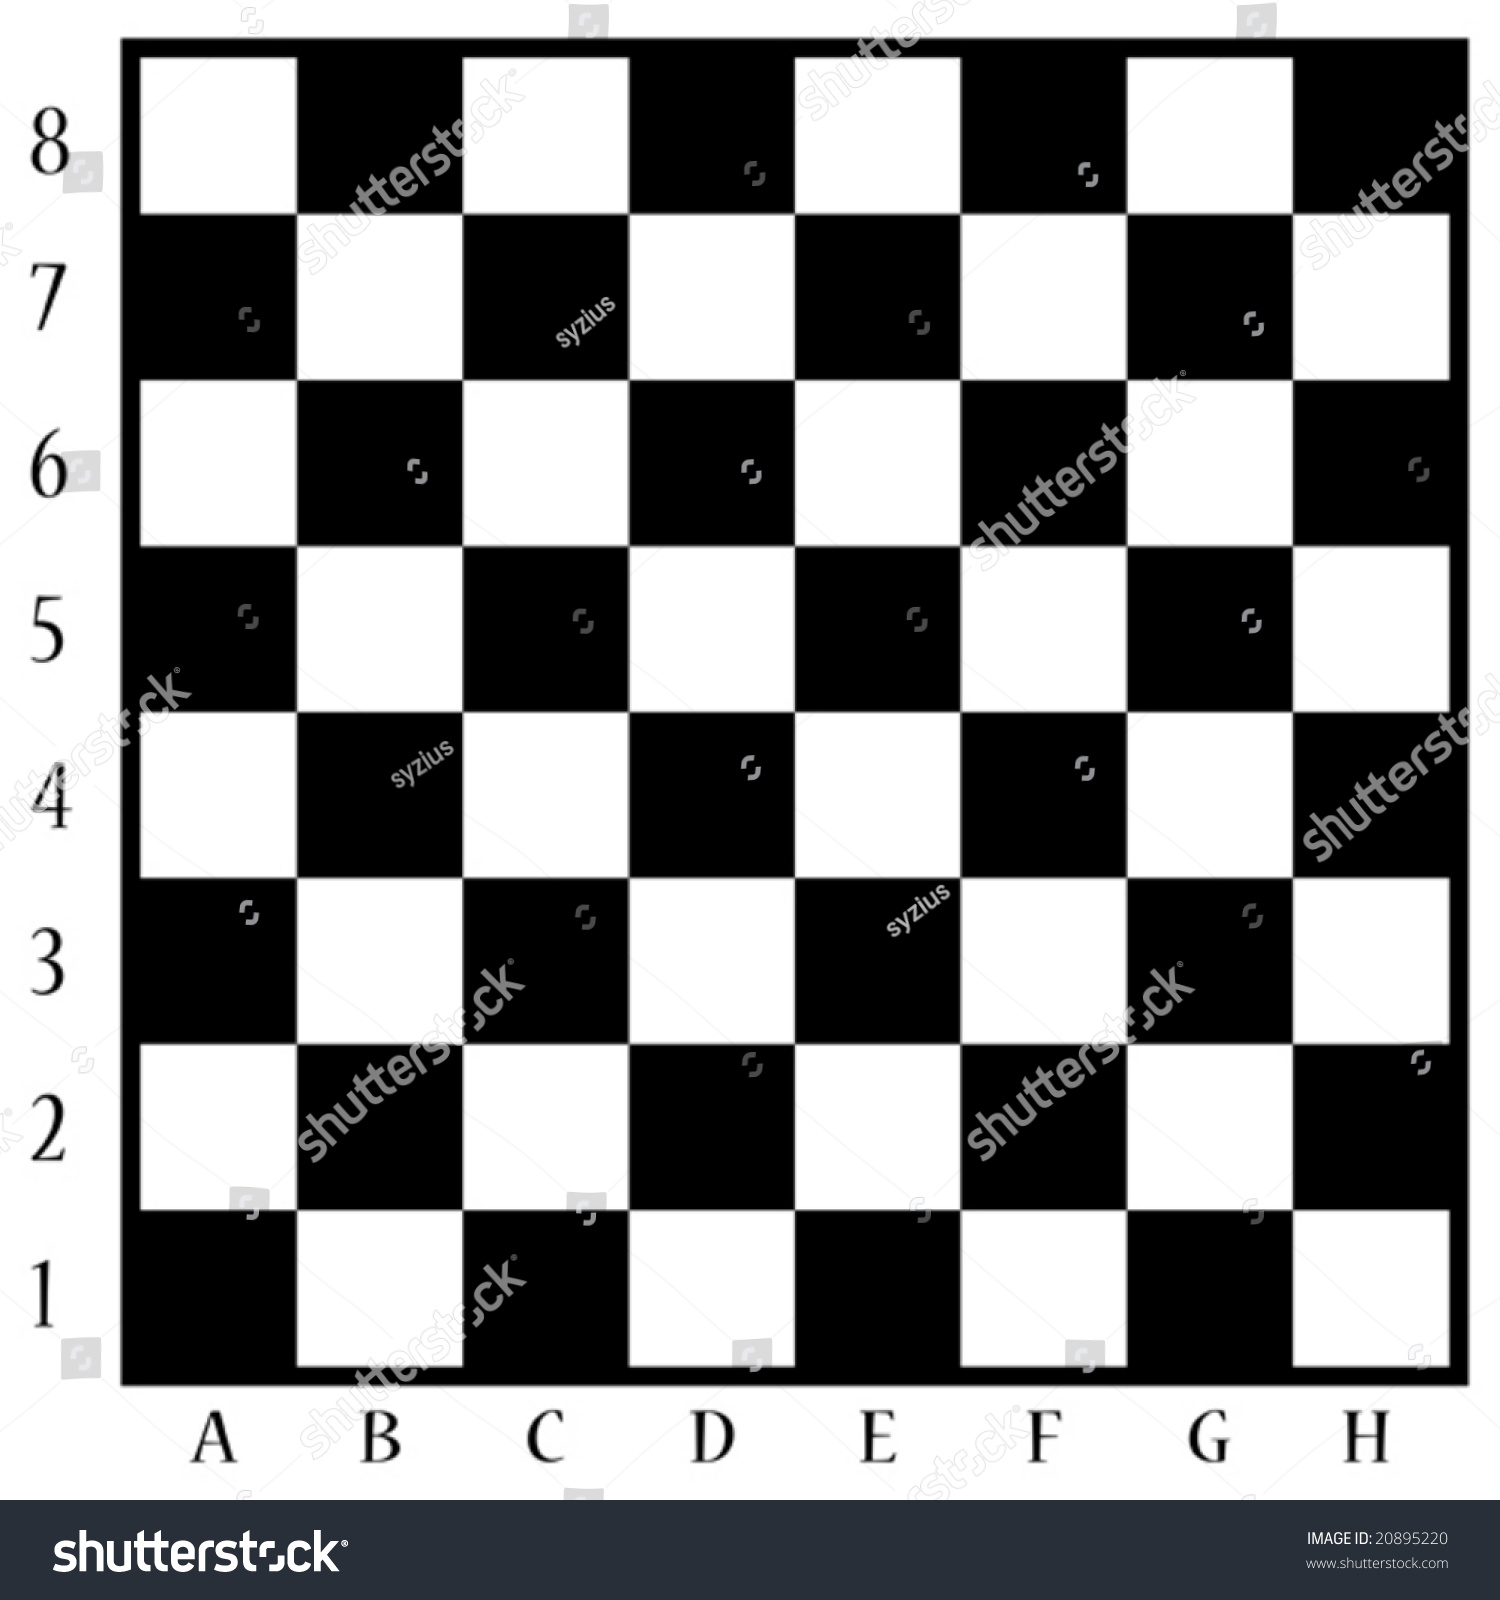 Chess board with numbers on the side